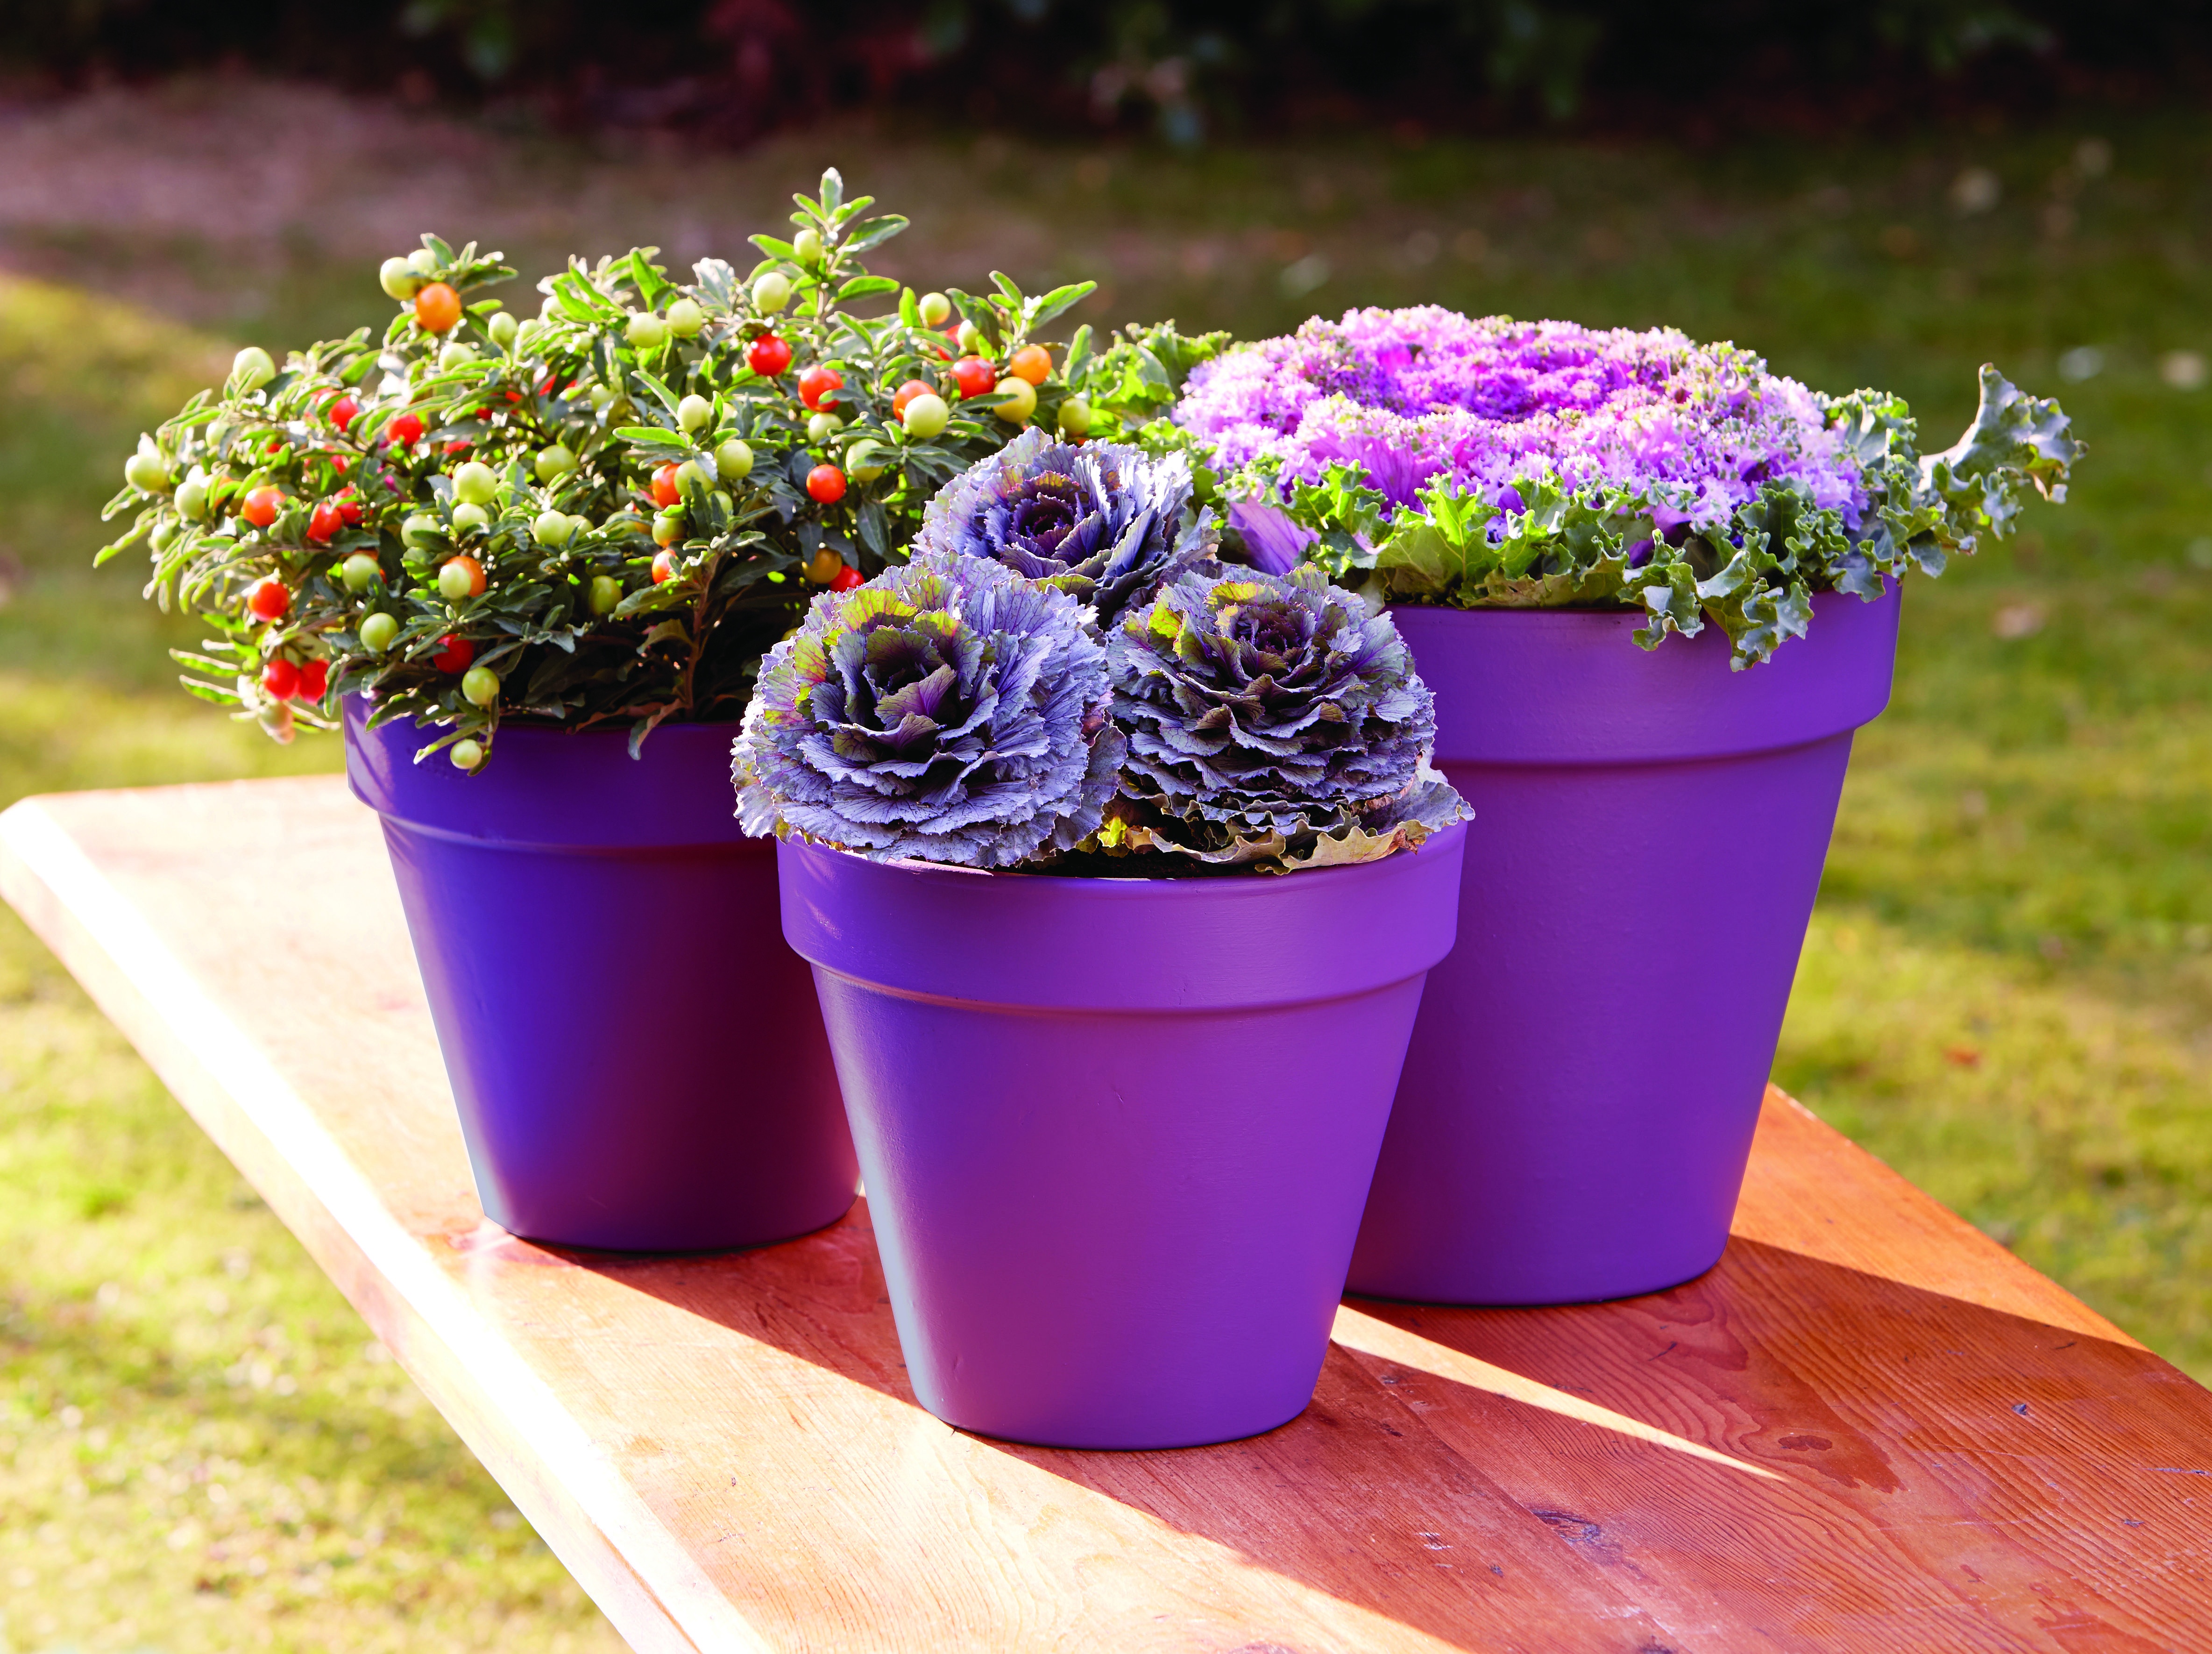 Ronseal chalky furniture paint ronseal - Ronseal Garden Paint Purple Berry Plant Pots